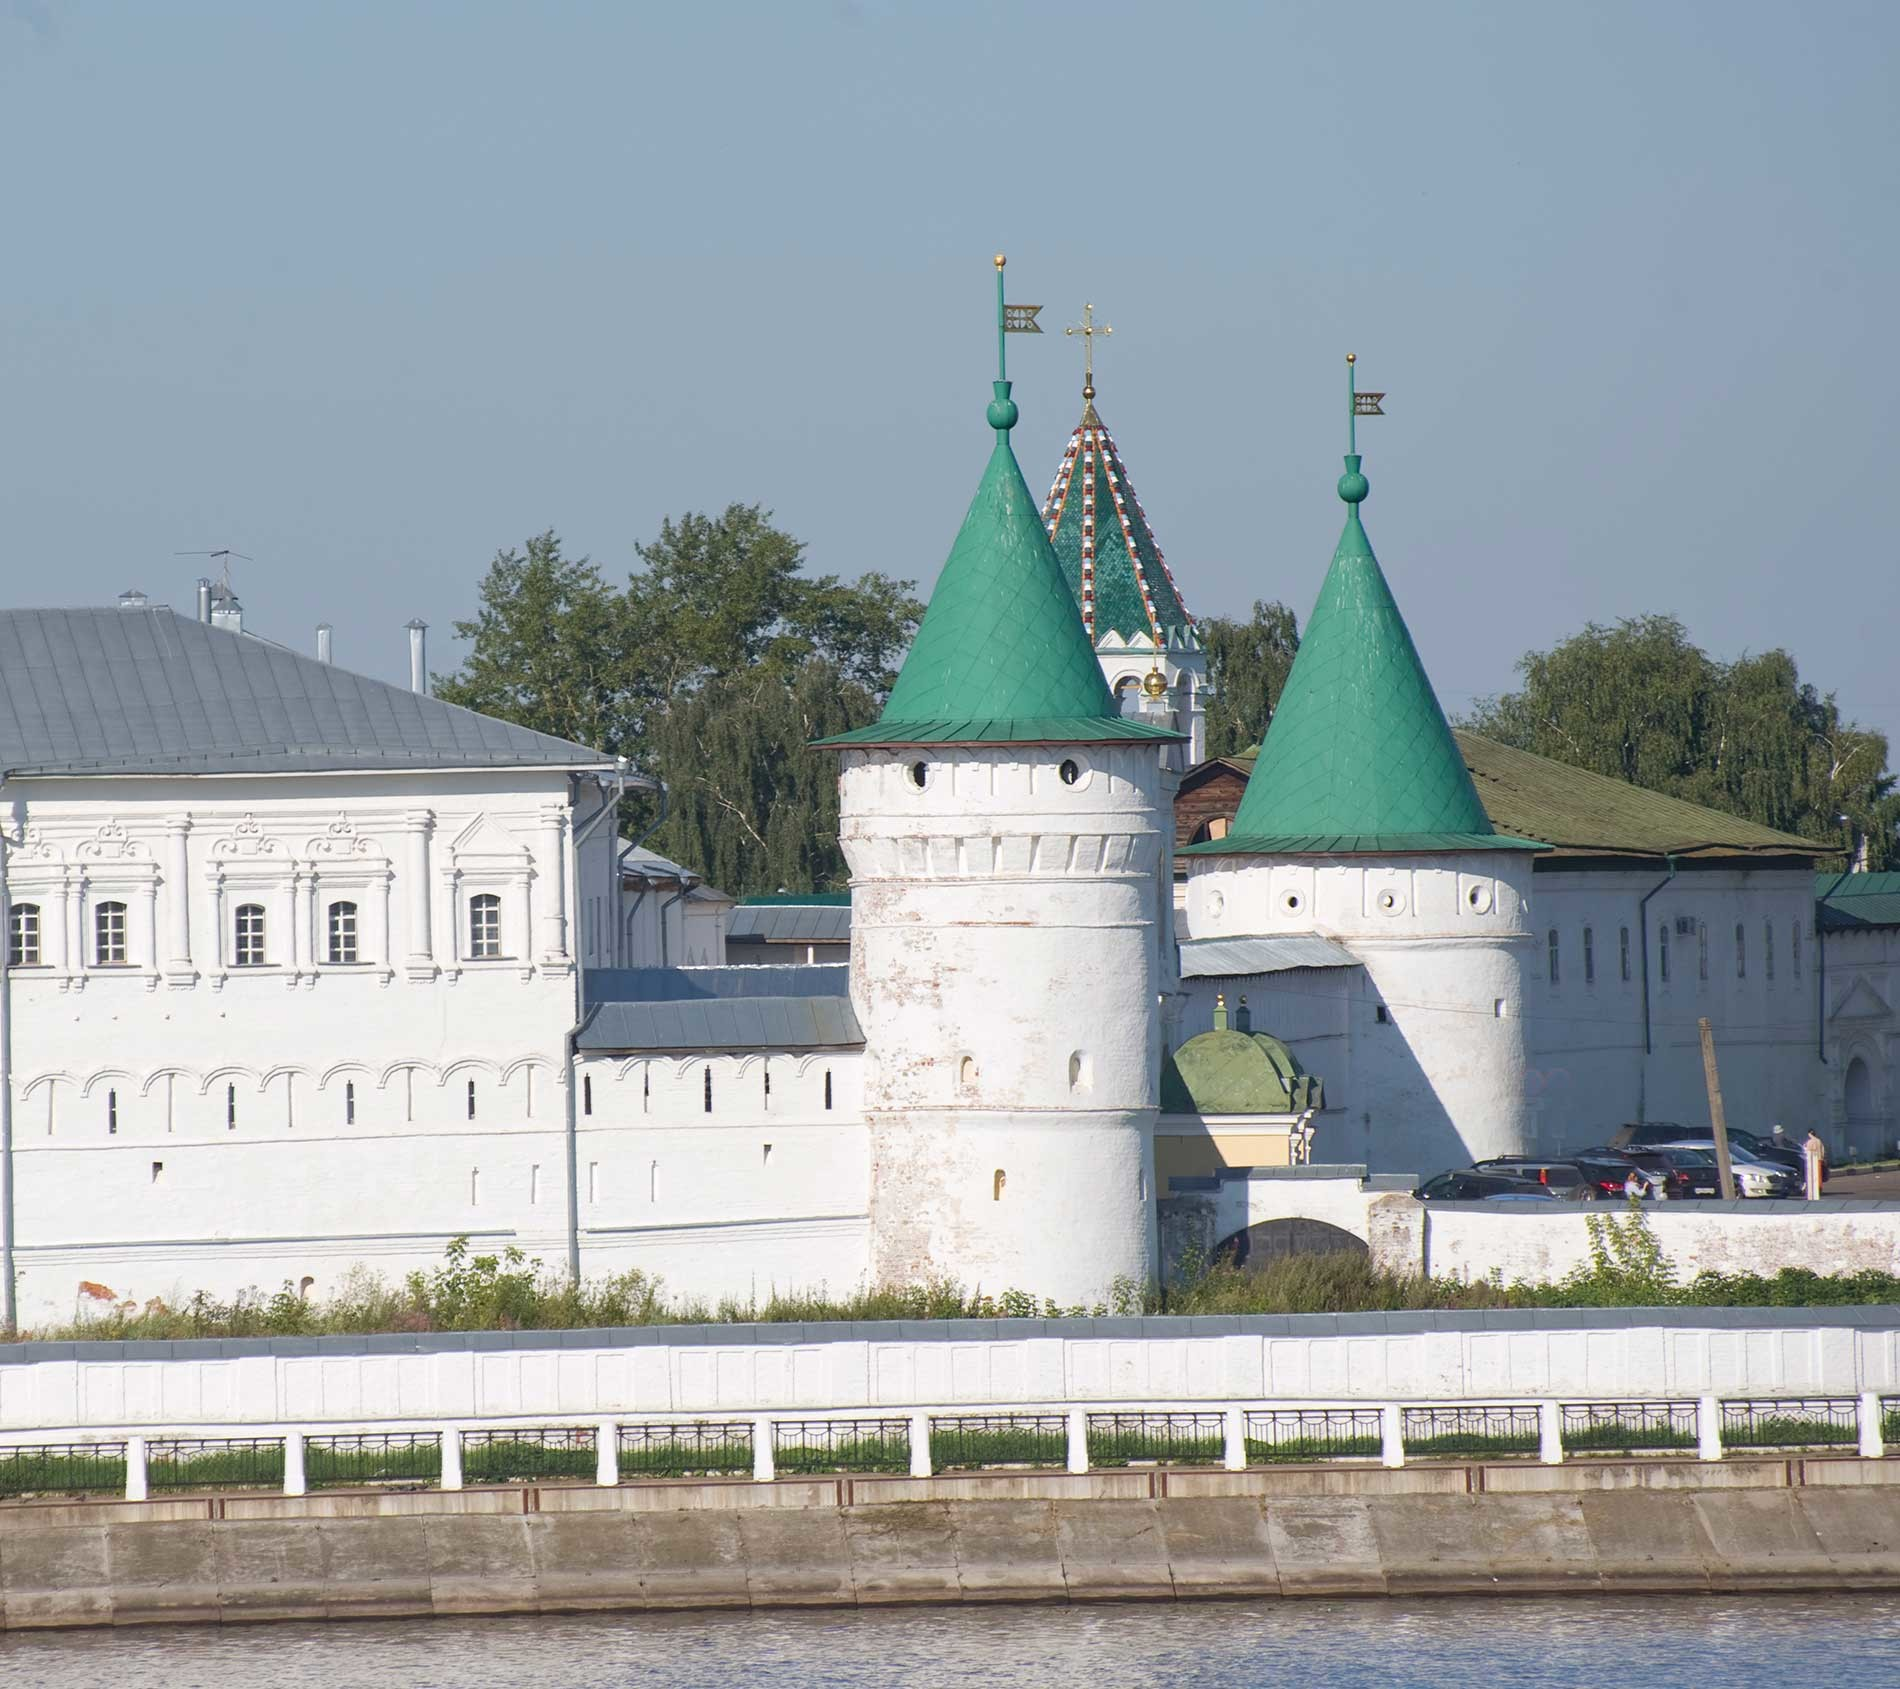 Trinity-Ipatiev Monastery, east view across Kostroma River. From left: Archbishop's Cloisters; Powder Tower; Green Tower (background); Catherine (North) Gate; Smithy Tower. Aug. 13, 2017.